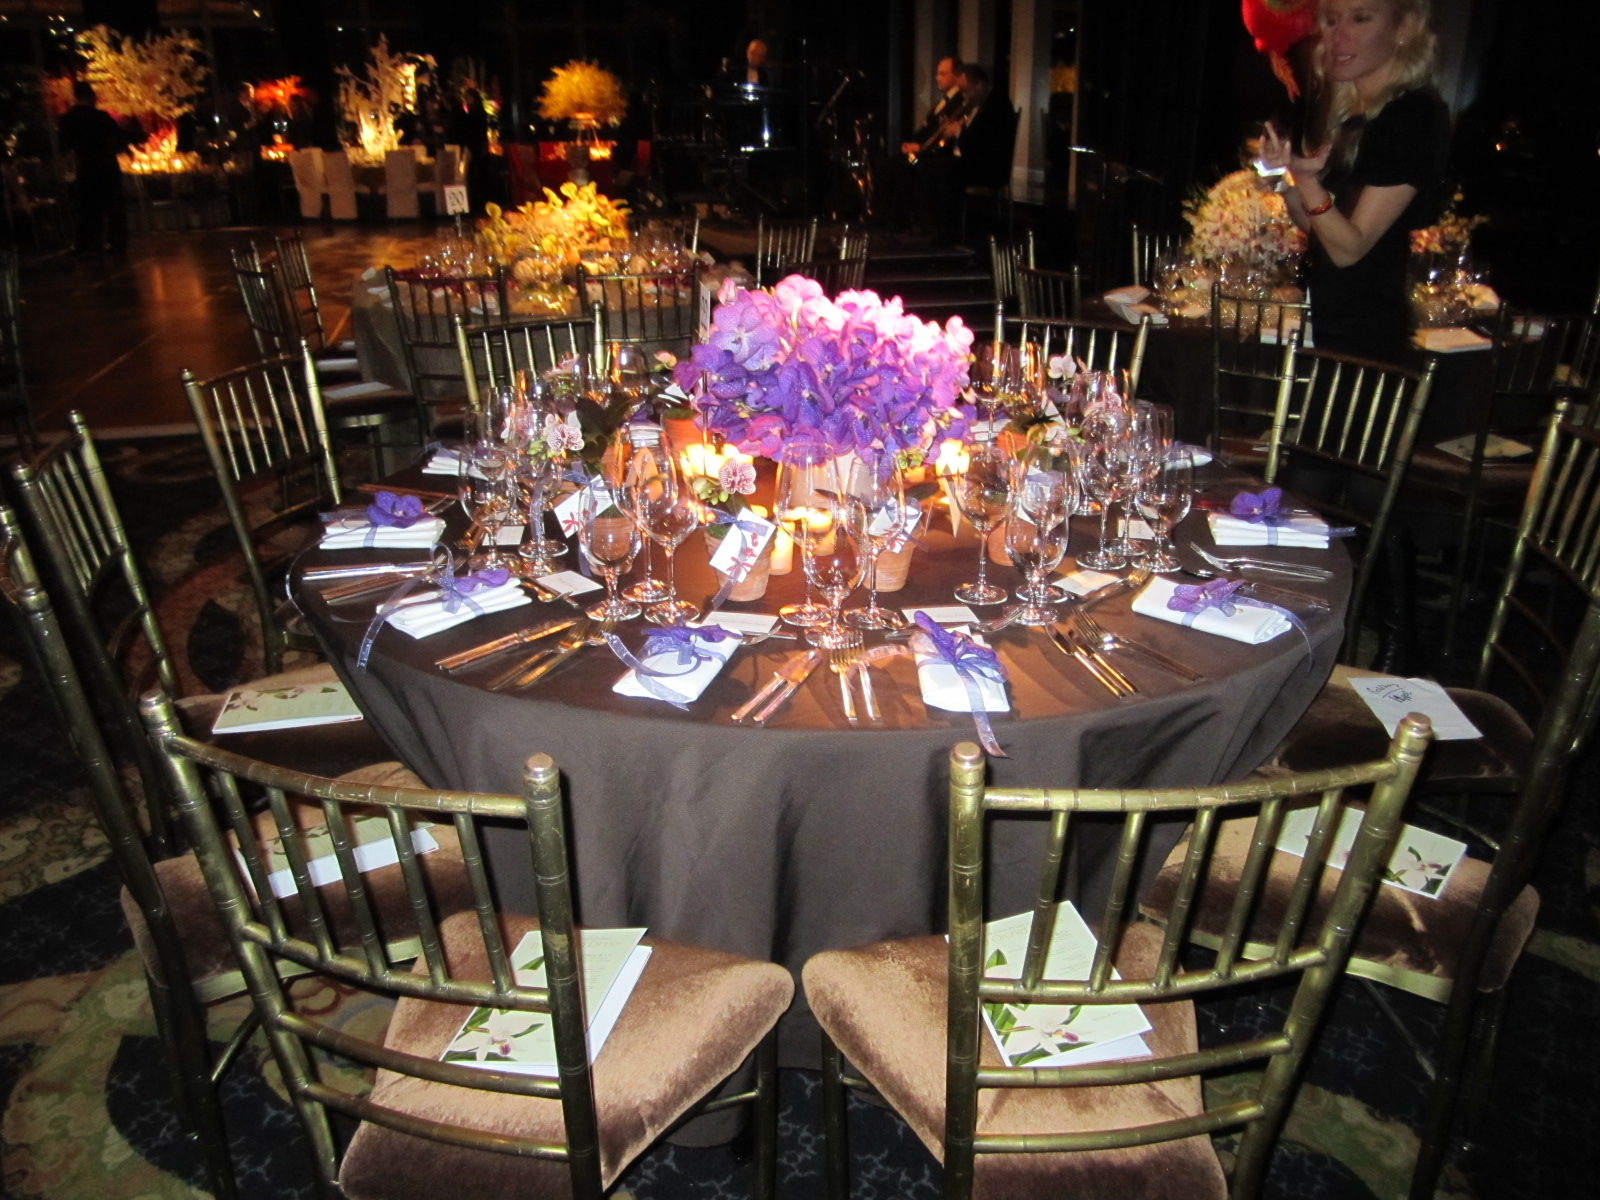 How Much Will These Round Table Centerpieces Cost From Florist